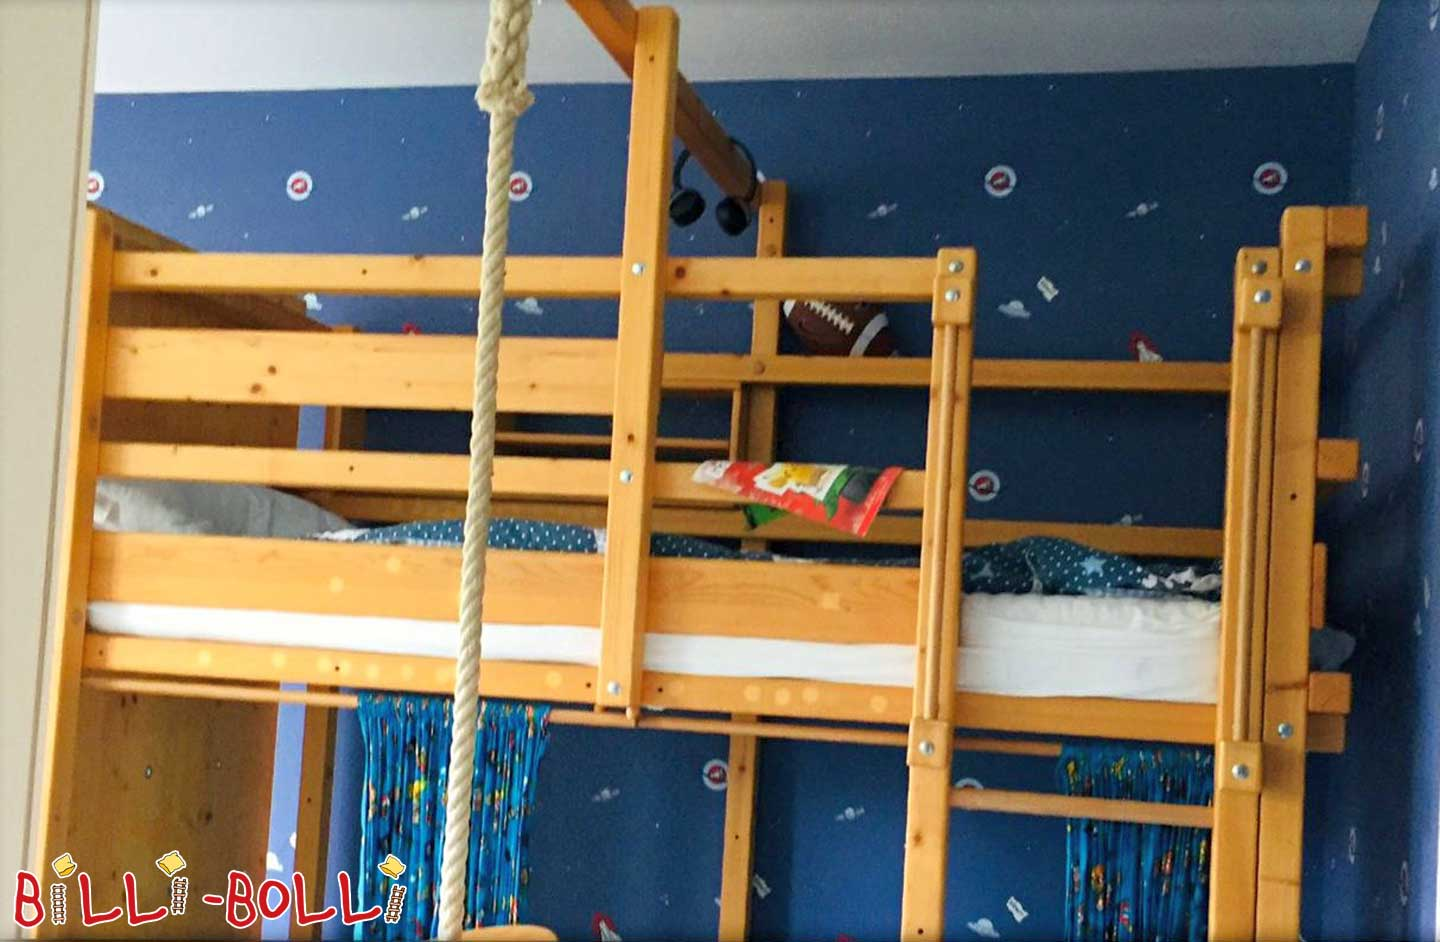 Collating high bed, 90 x 200 cm, spruce oil-waxed (second hand loft bed)